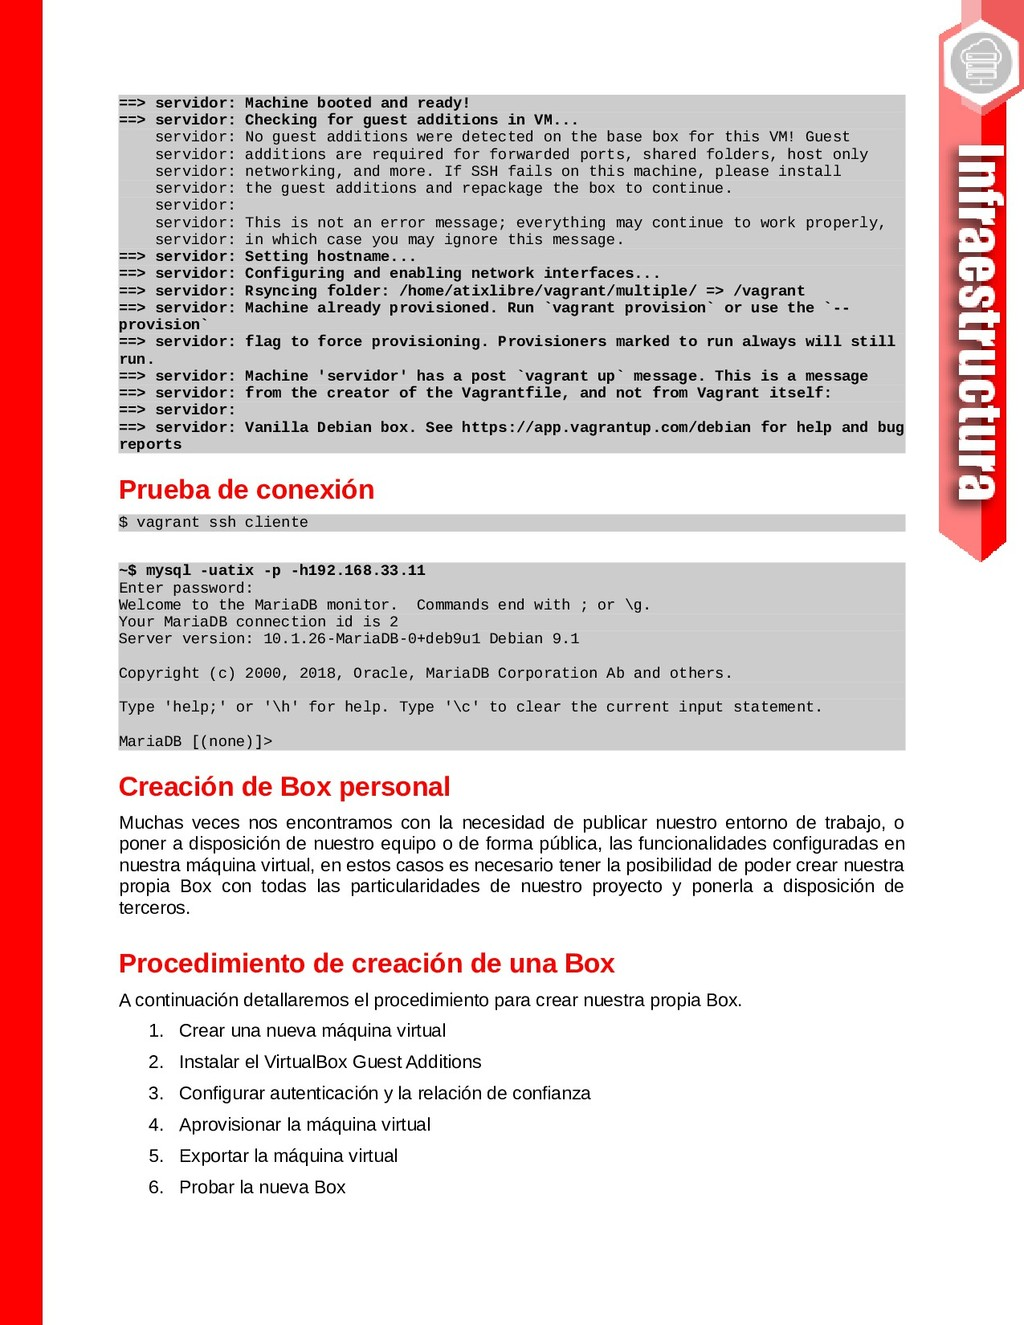 ==> servidor: Machine booted and ready! ==> ser...